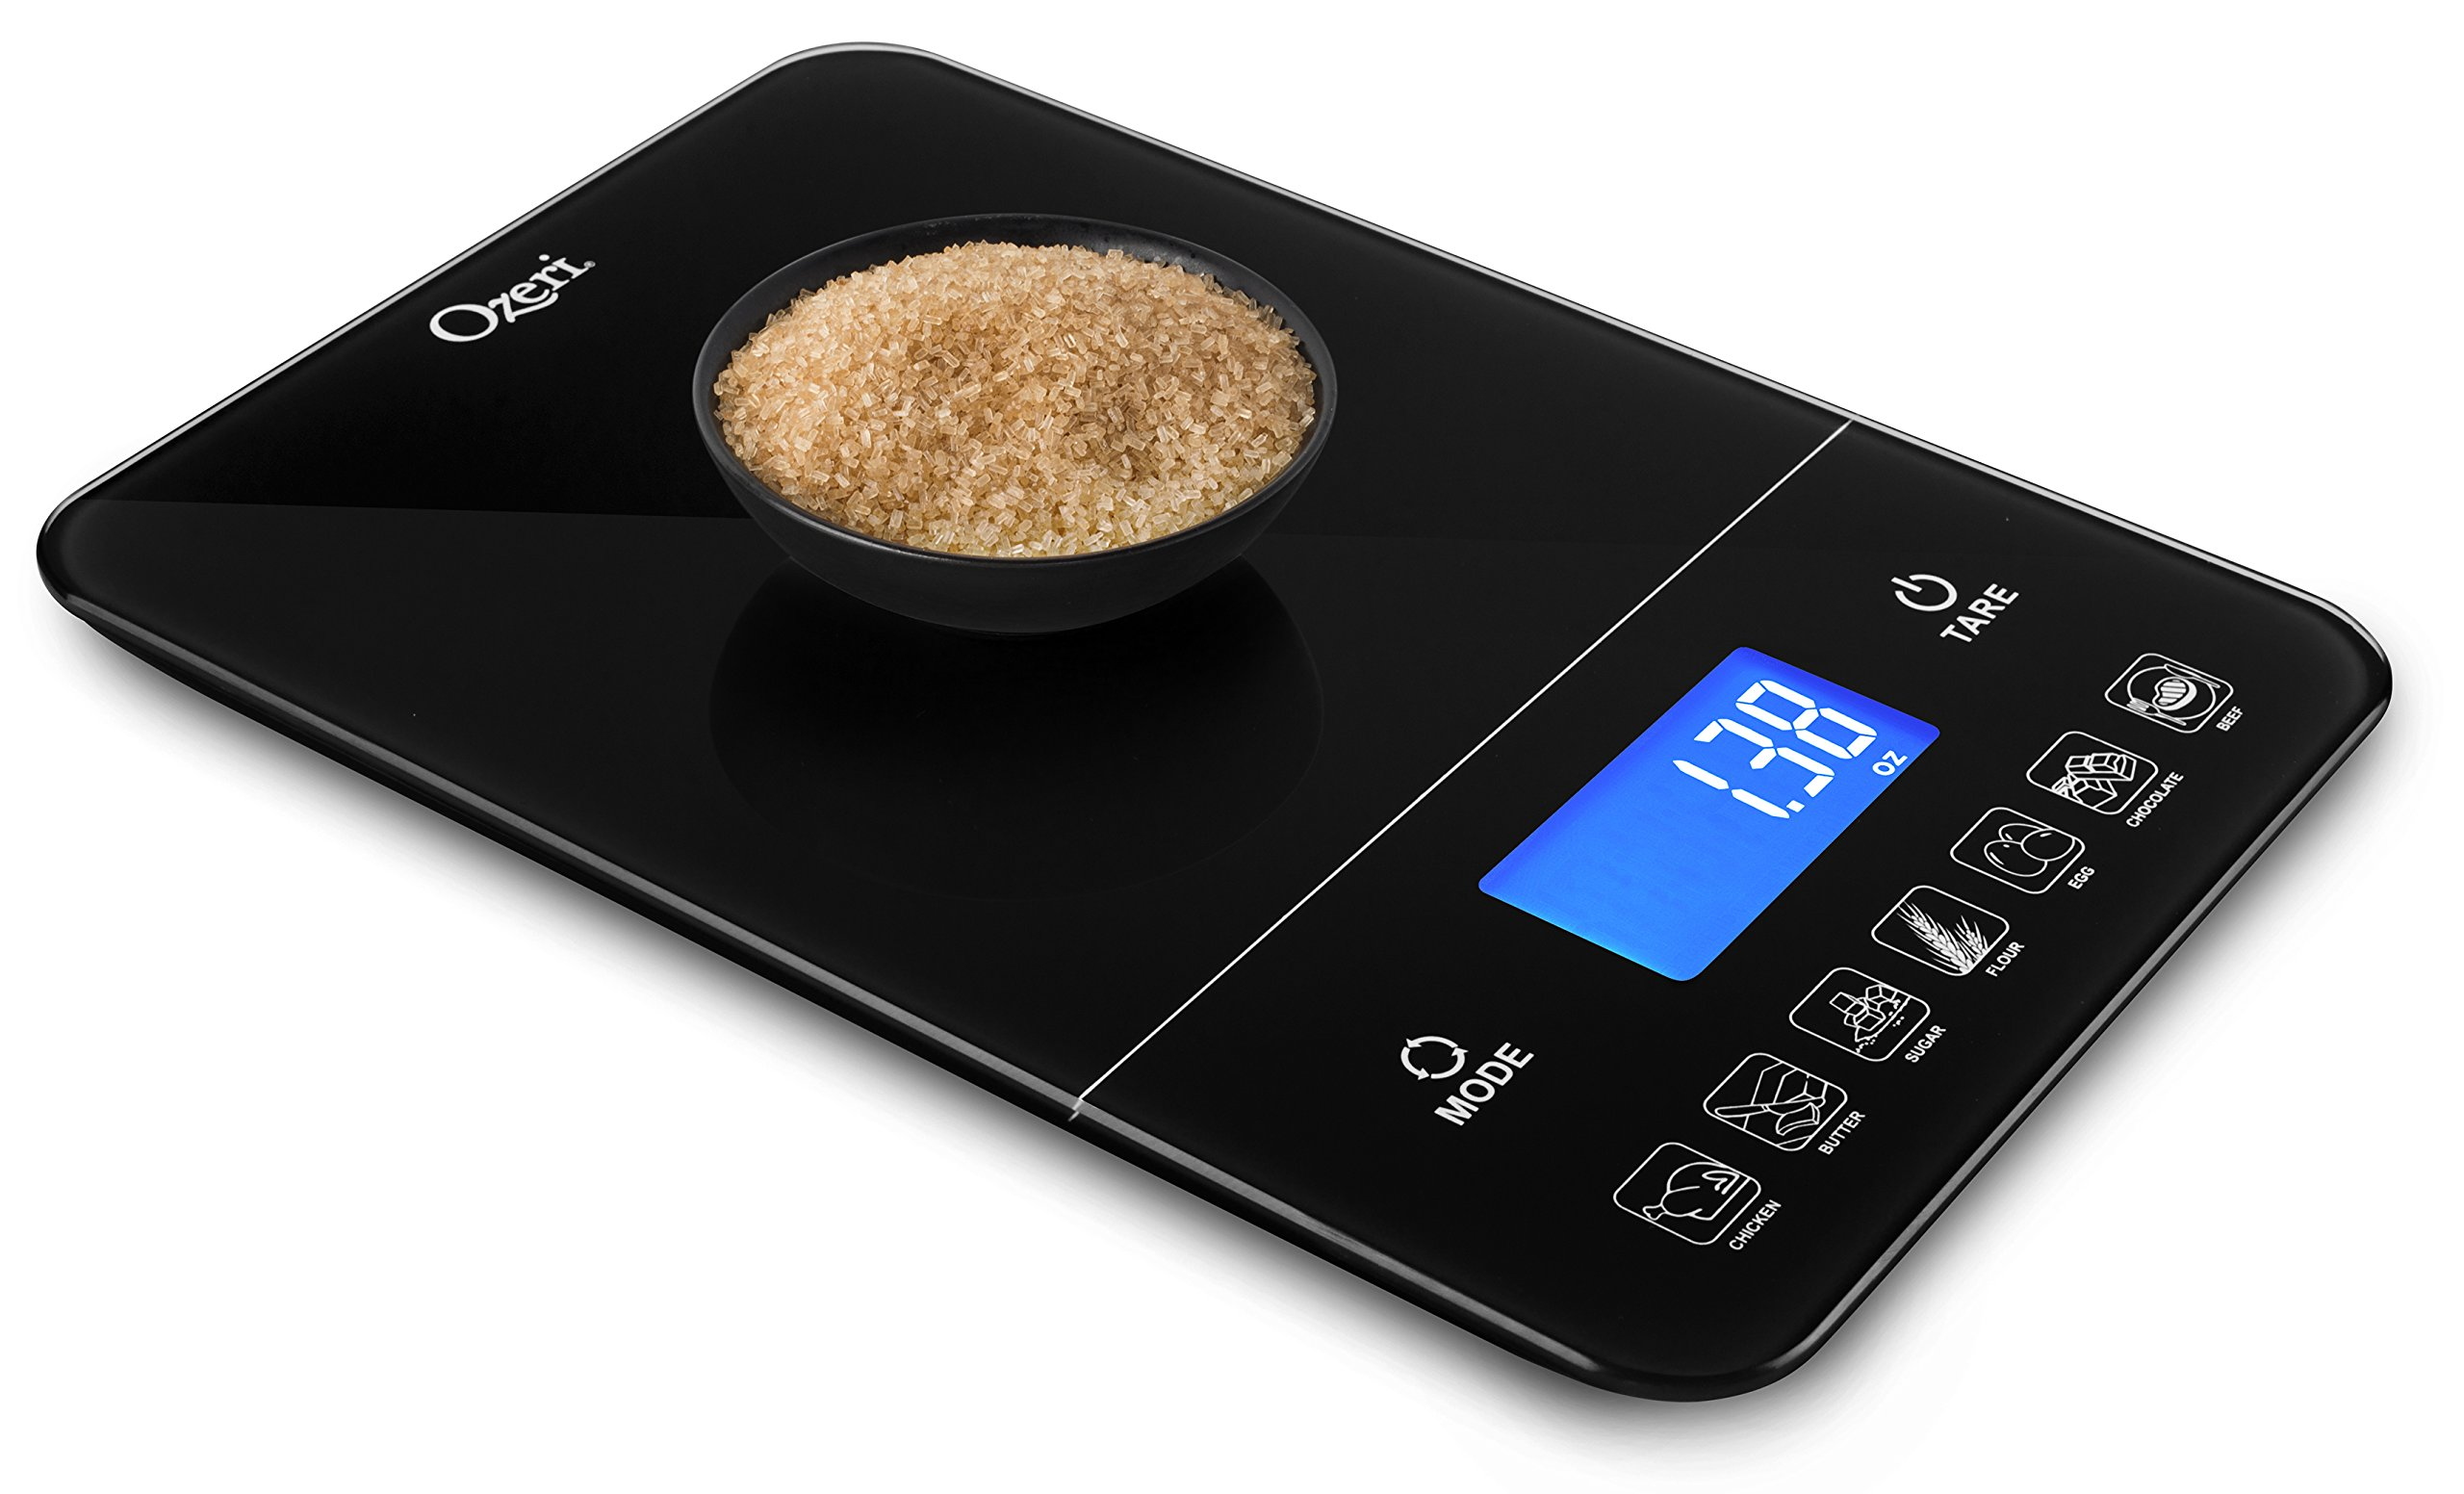 Ozeri Touch Iii 22 Lbs 10 Kg Digital Kitchen Scale With Calorie Counter In Tempered Glass Kitchen Scales Amazon Com Au